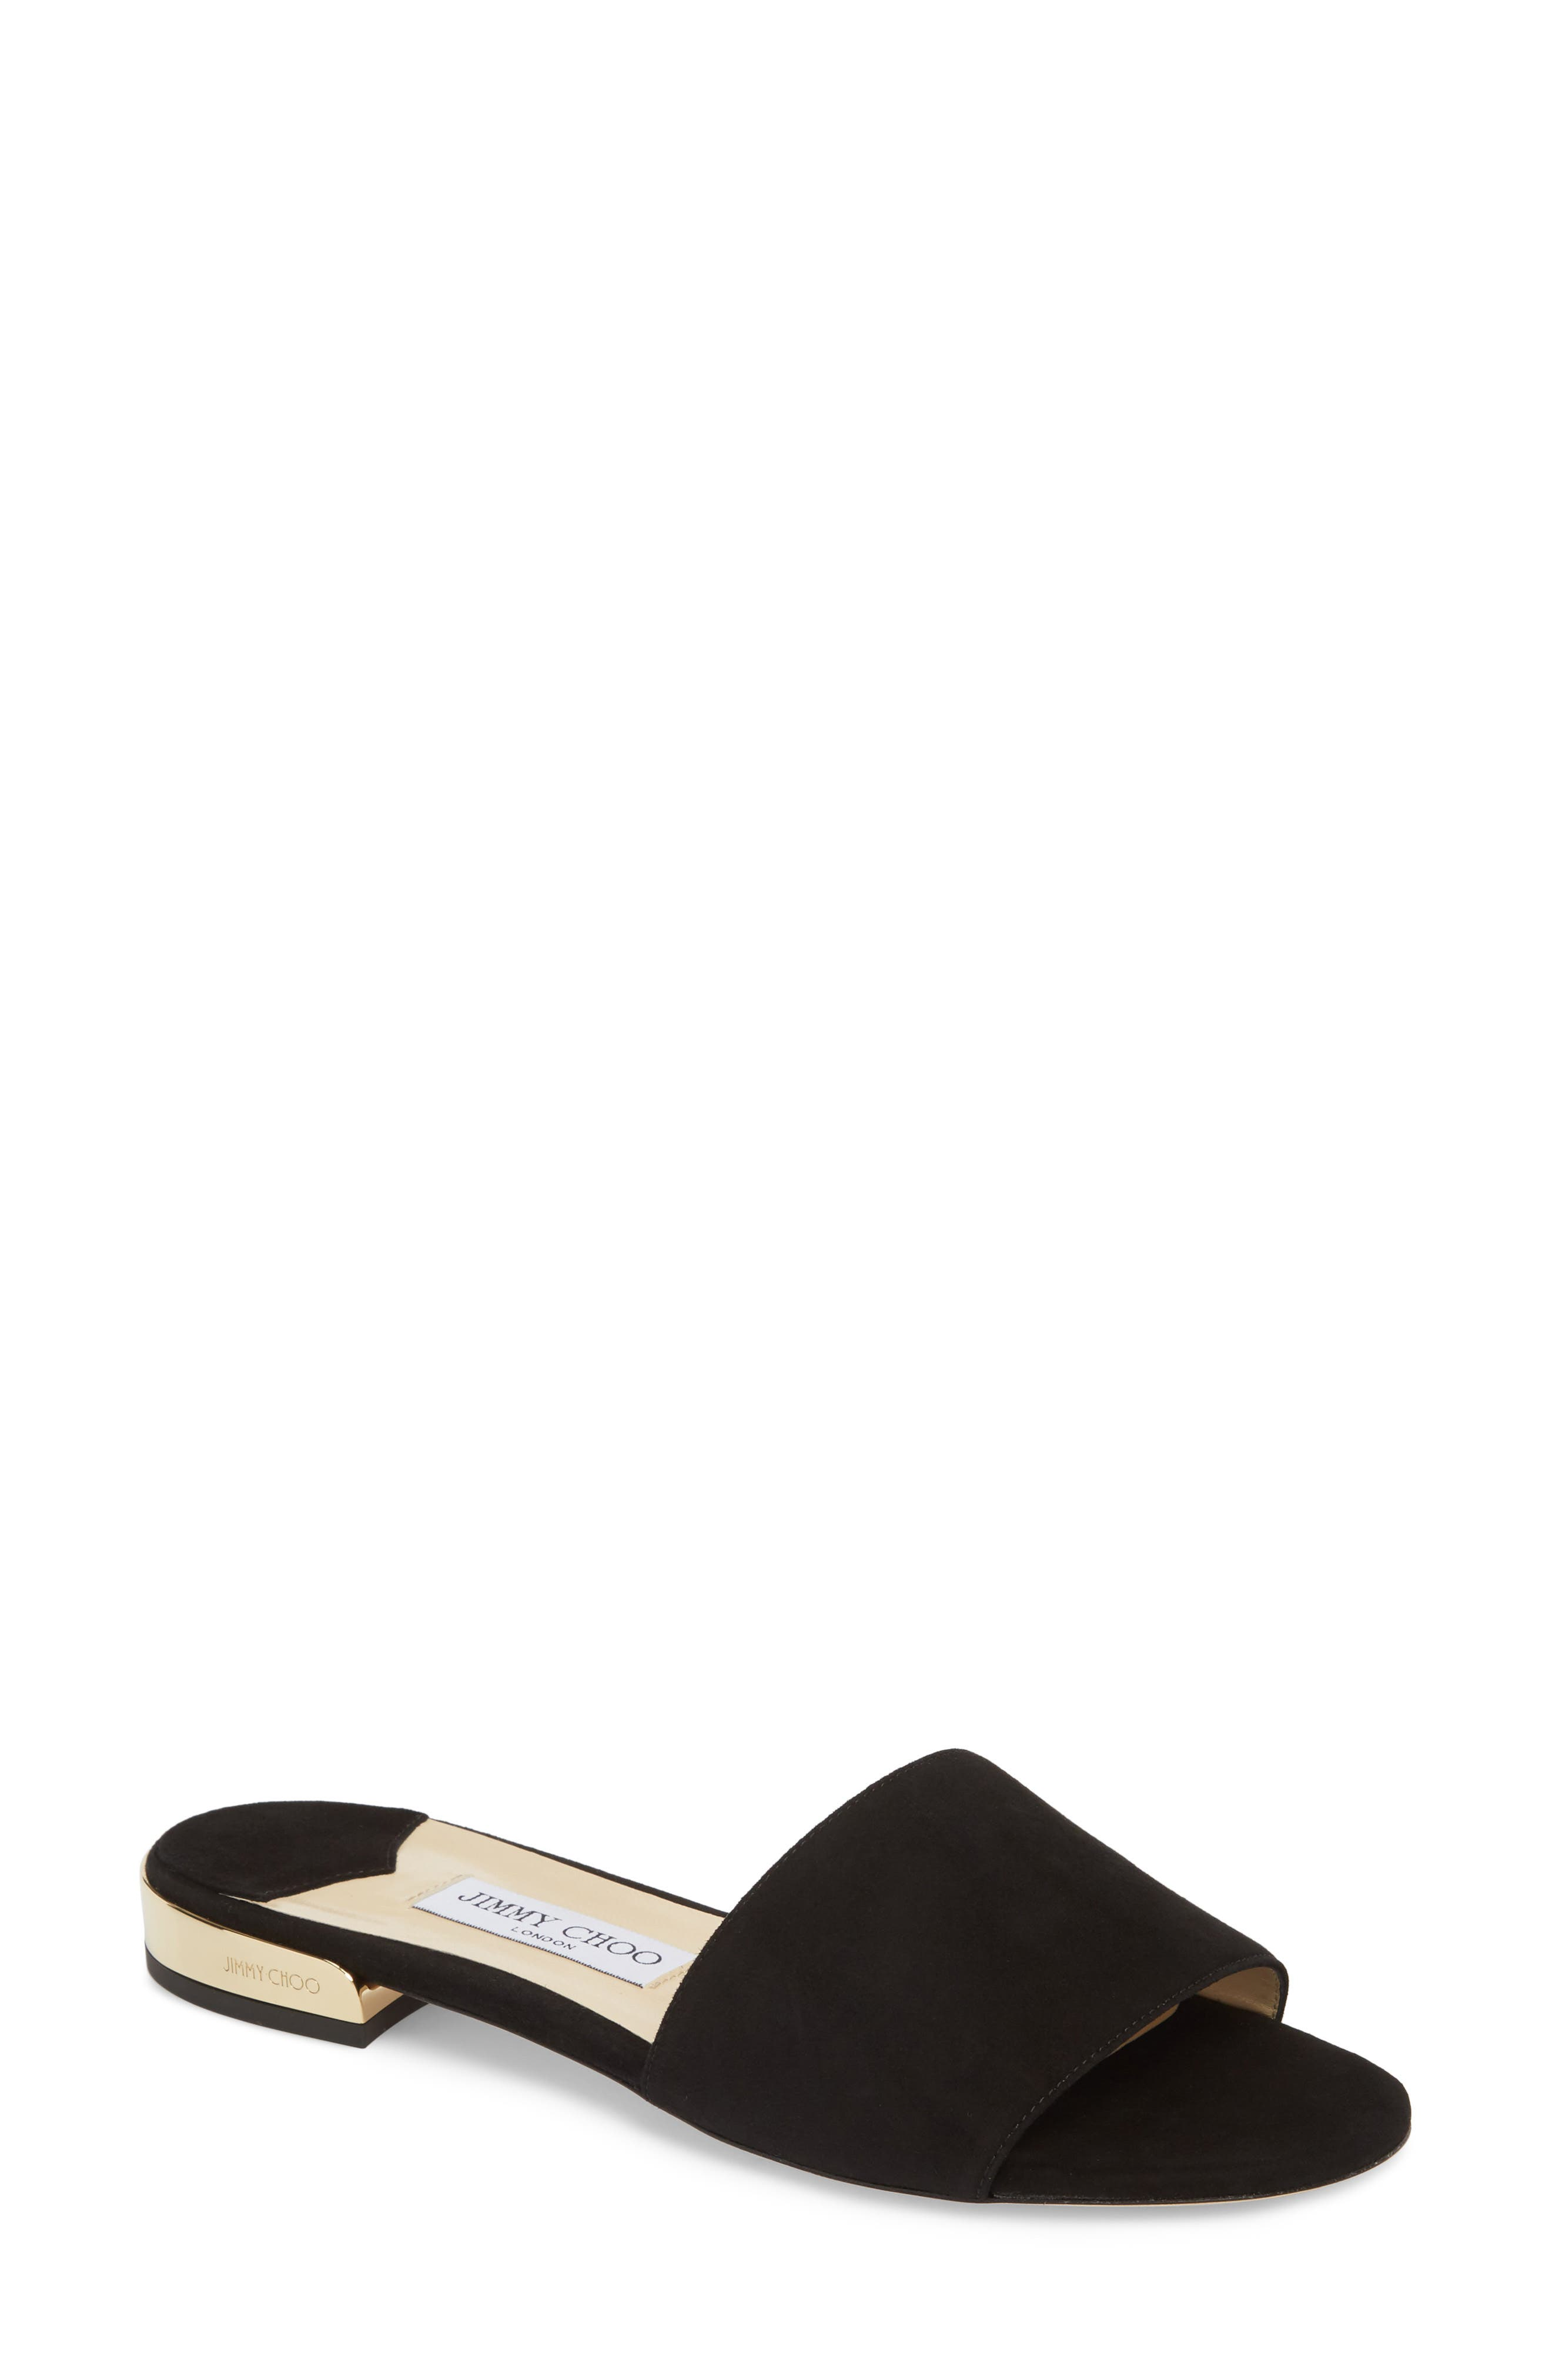 Joni Slide Sandal,                         Main,                         color, BLACK